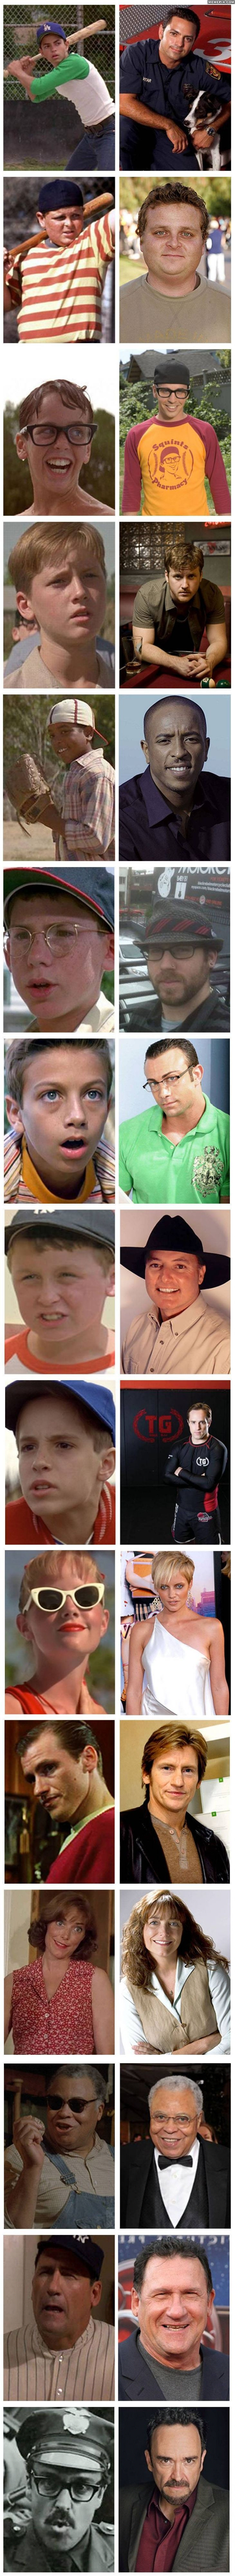 The Sandlot - Then and Now.. loved this movie!